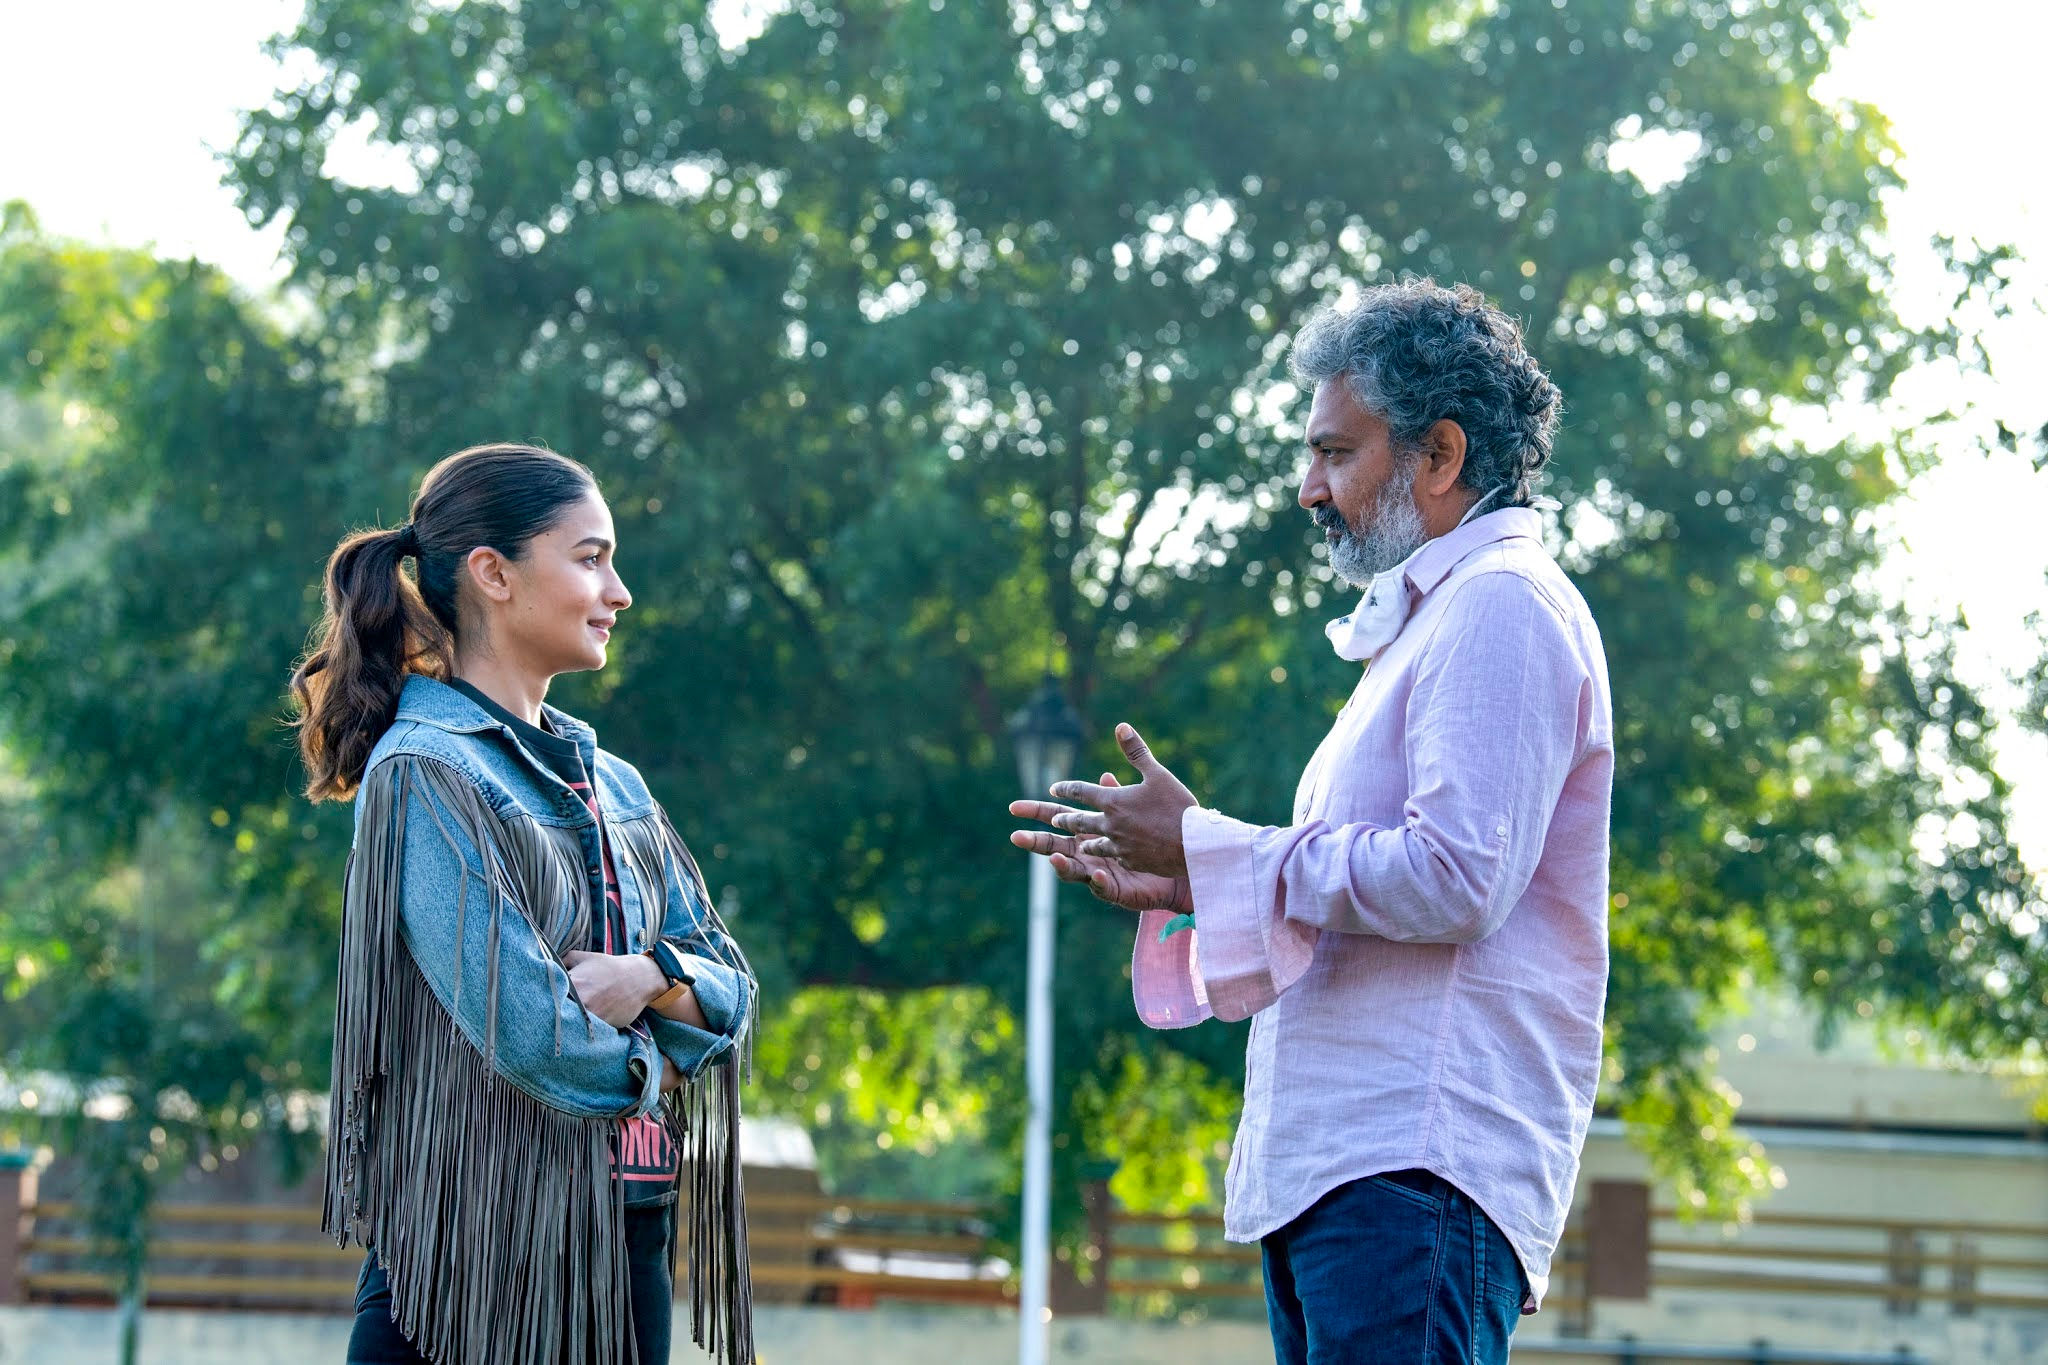 Actress Alia Bhatt joins RRR Movie Shoot with Director SS Rajamouli